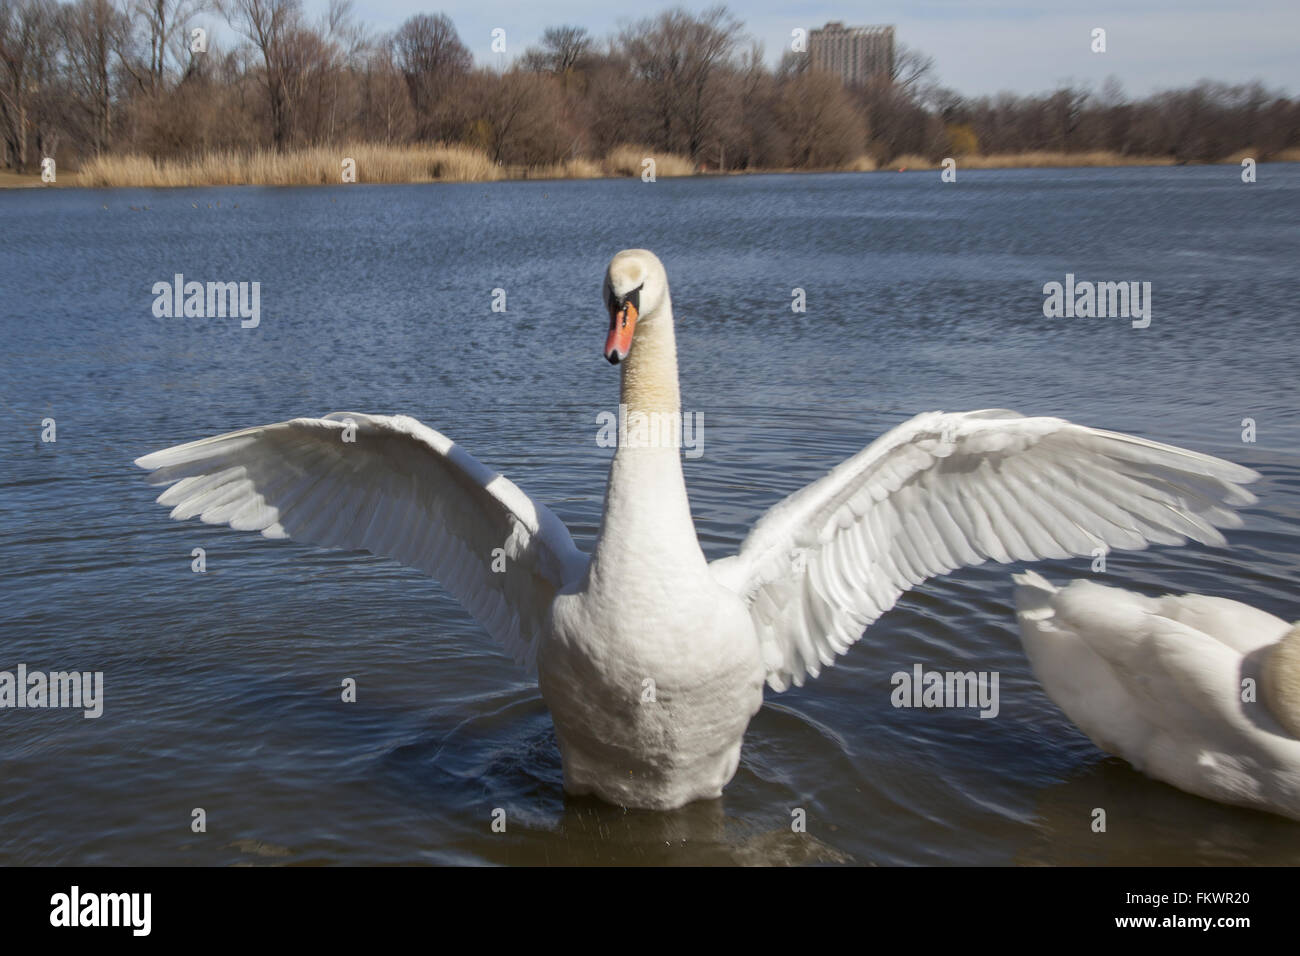 A Swan shows off for the camera, Prospect Park Lake, Brooklyn, NY. - Stock Image